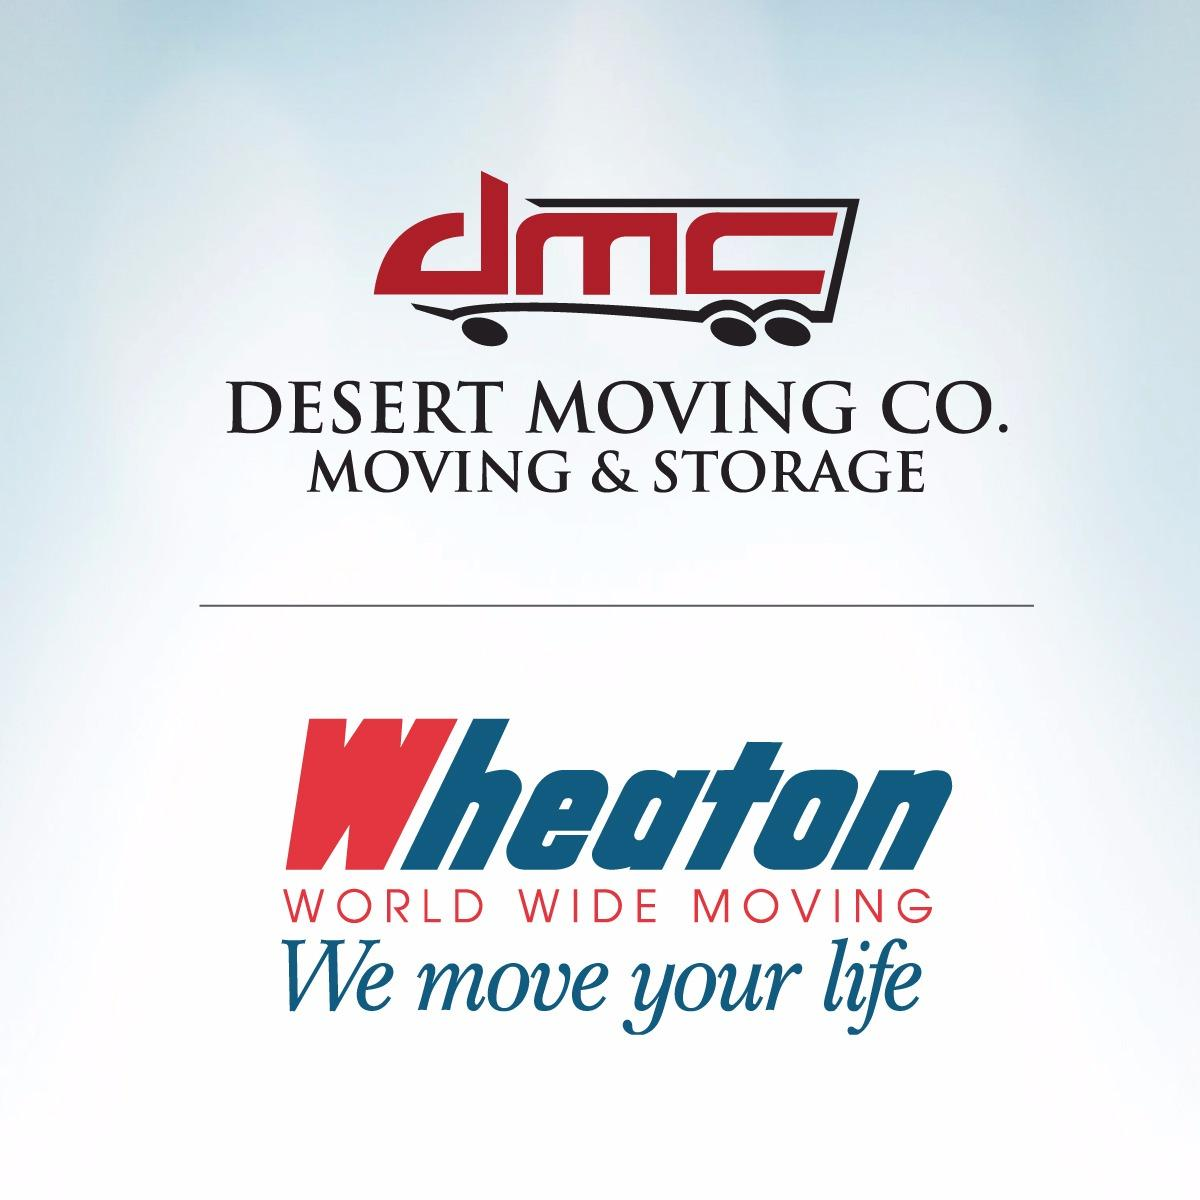 Desert Moving Company | Wheaton World Wide Moving